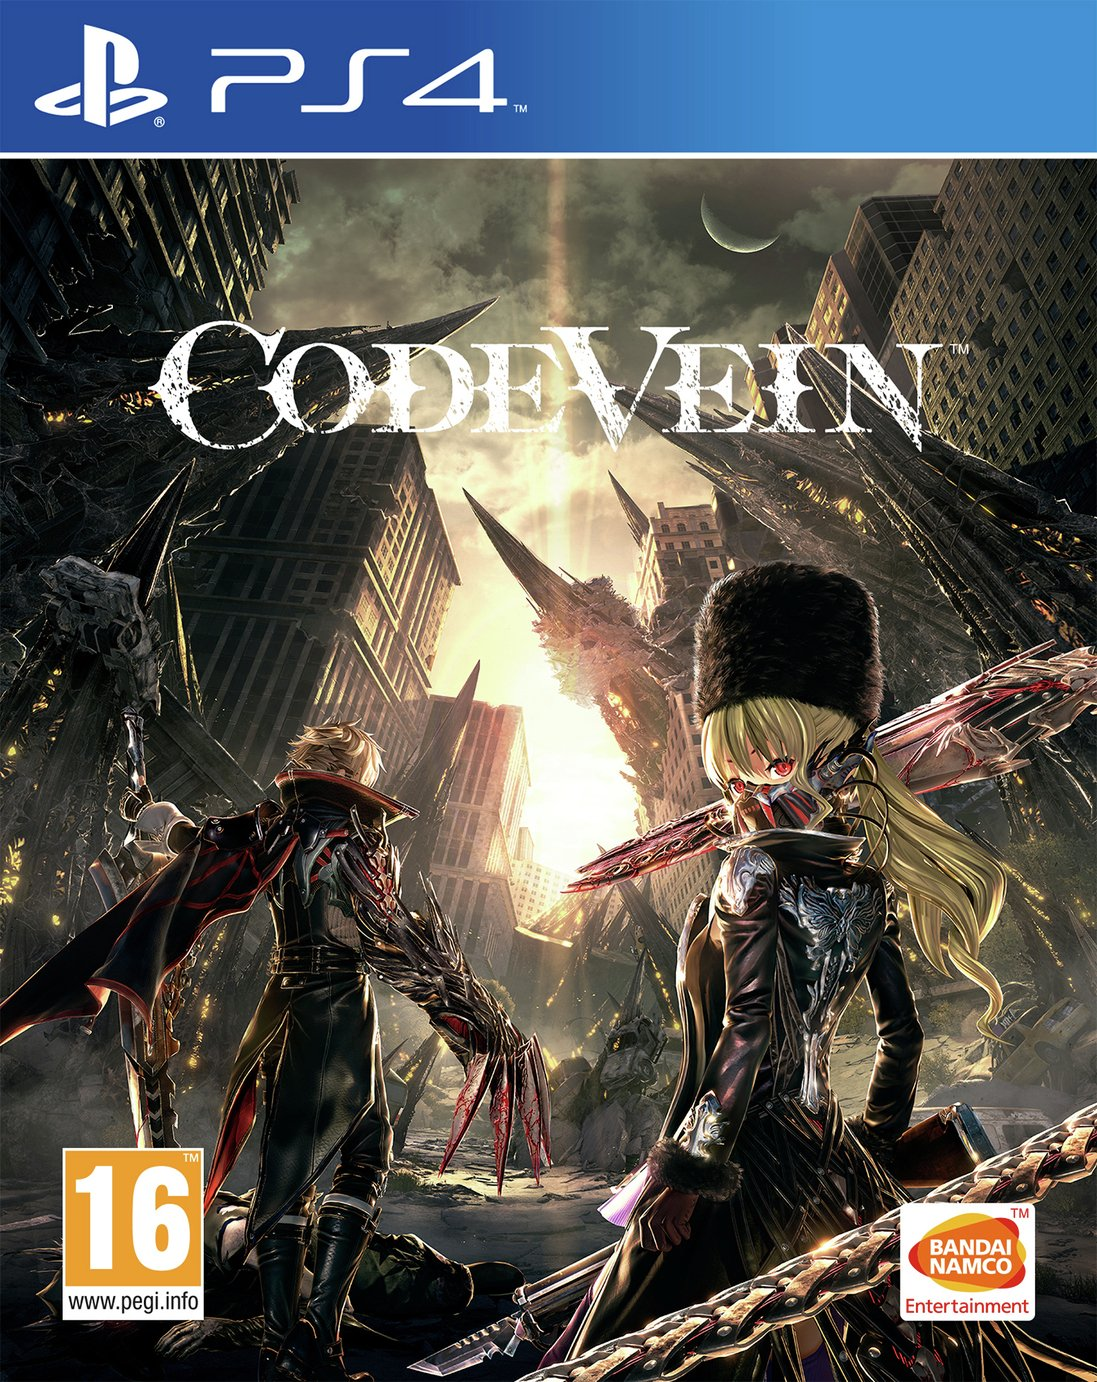 Image of Code Vein PS4 Pre-Order Game.